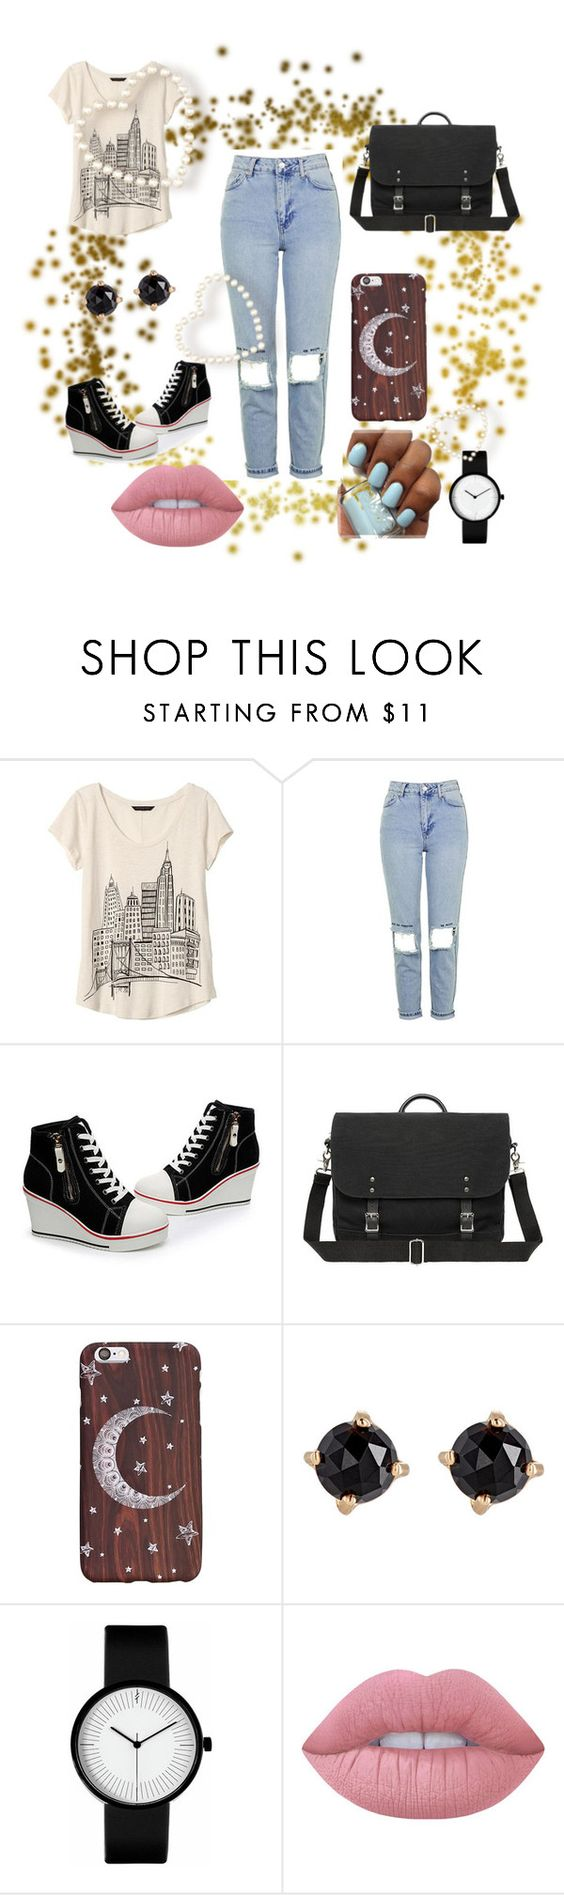 """""""Untitled #677"""" by modapamy ❤ liked on Polyvore featuring Banana Republic, Topshop, Irene Neuwirth and Lime Crime"""